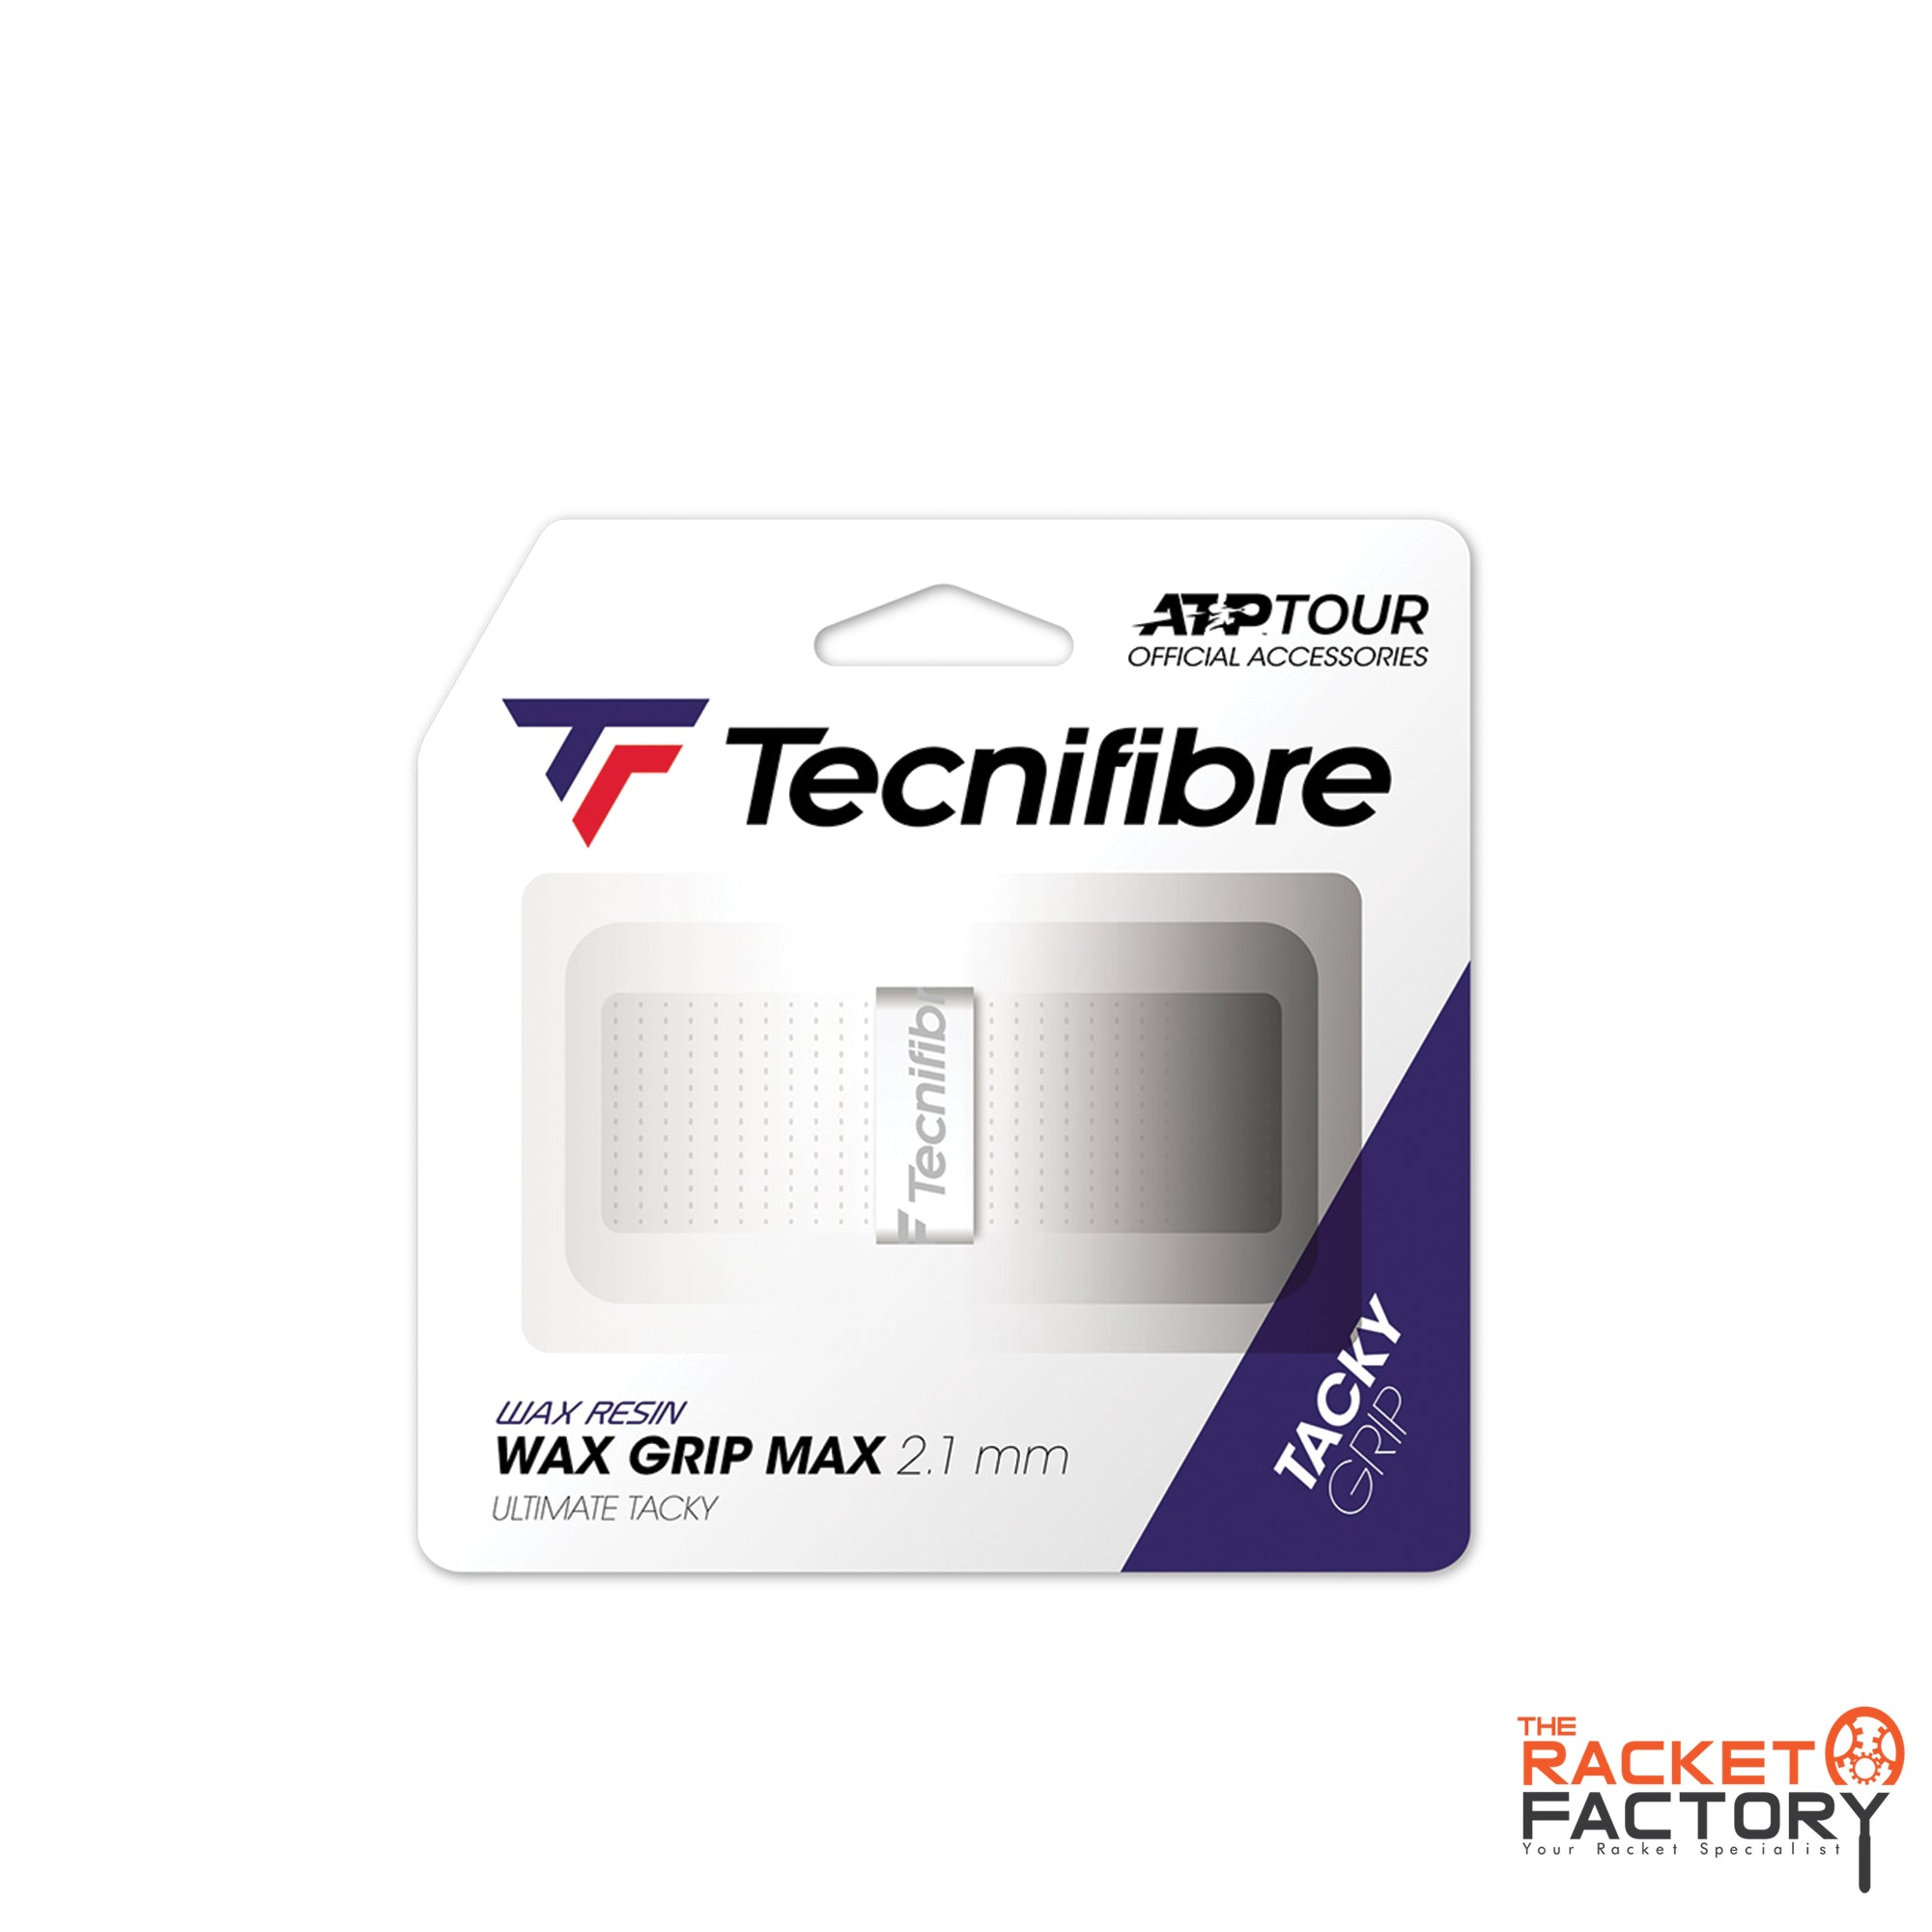 Tecnifibre ATP Wax Grip Max Replacement Grip - Pack of 1